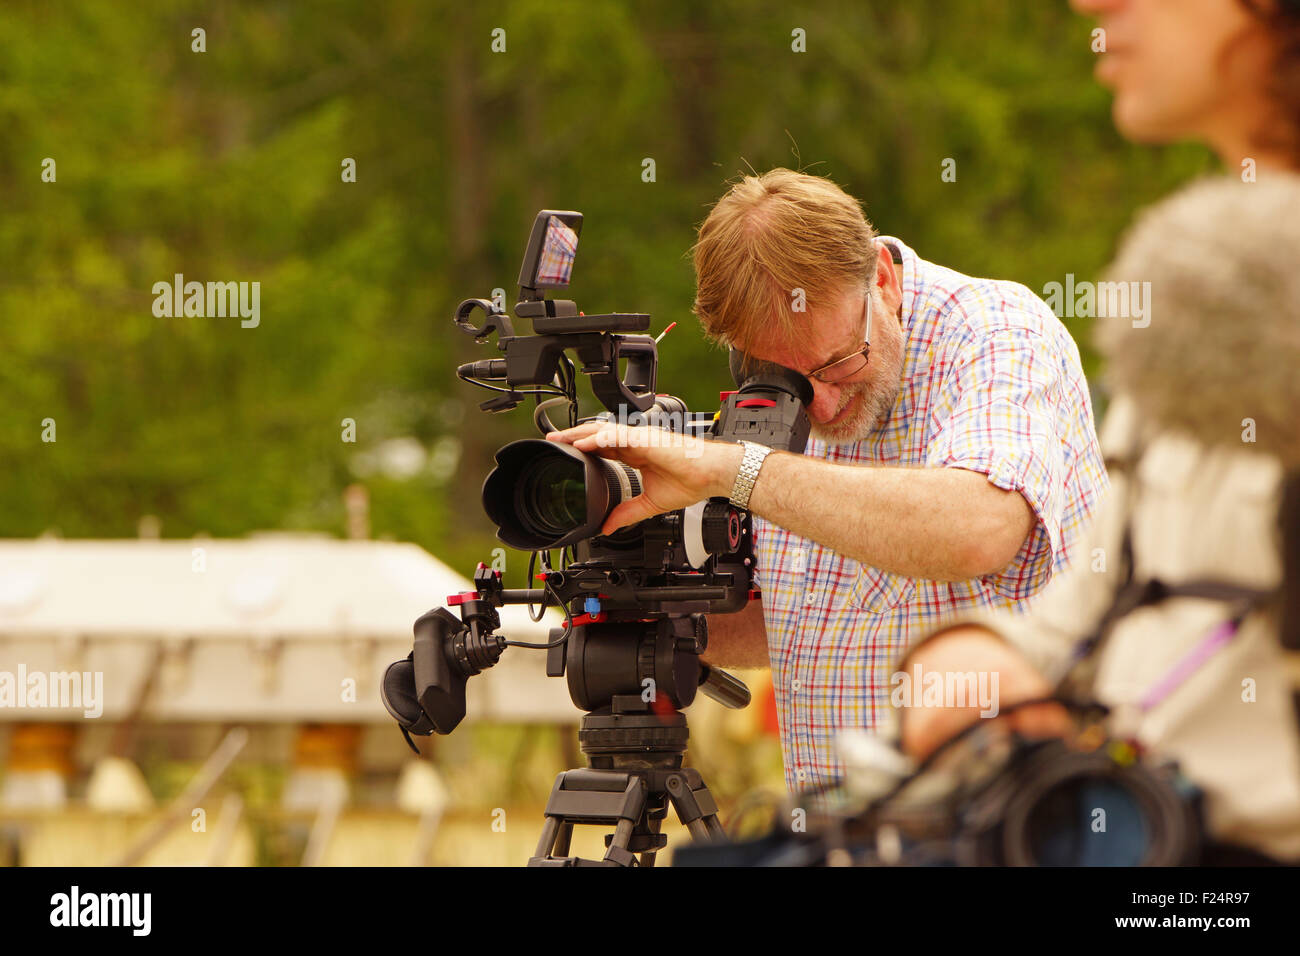 Cameraman and sound recordist at work - Stock Image